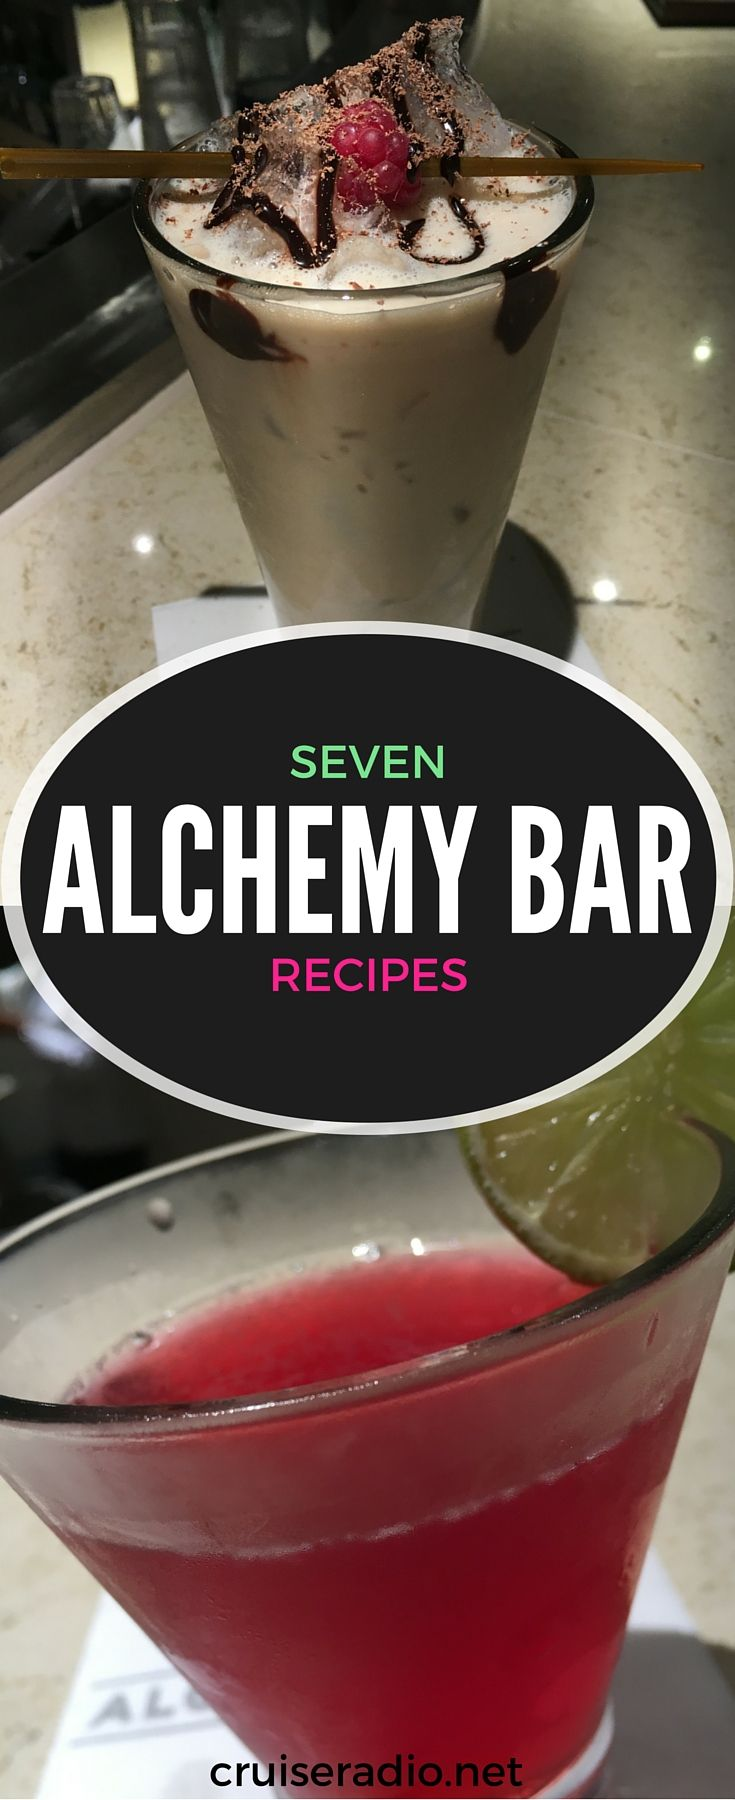 7 Alchemy Bar Recipes to Mix Up at Home | Carnival cruise ...